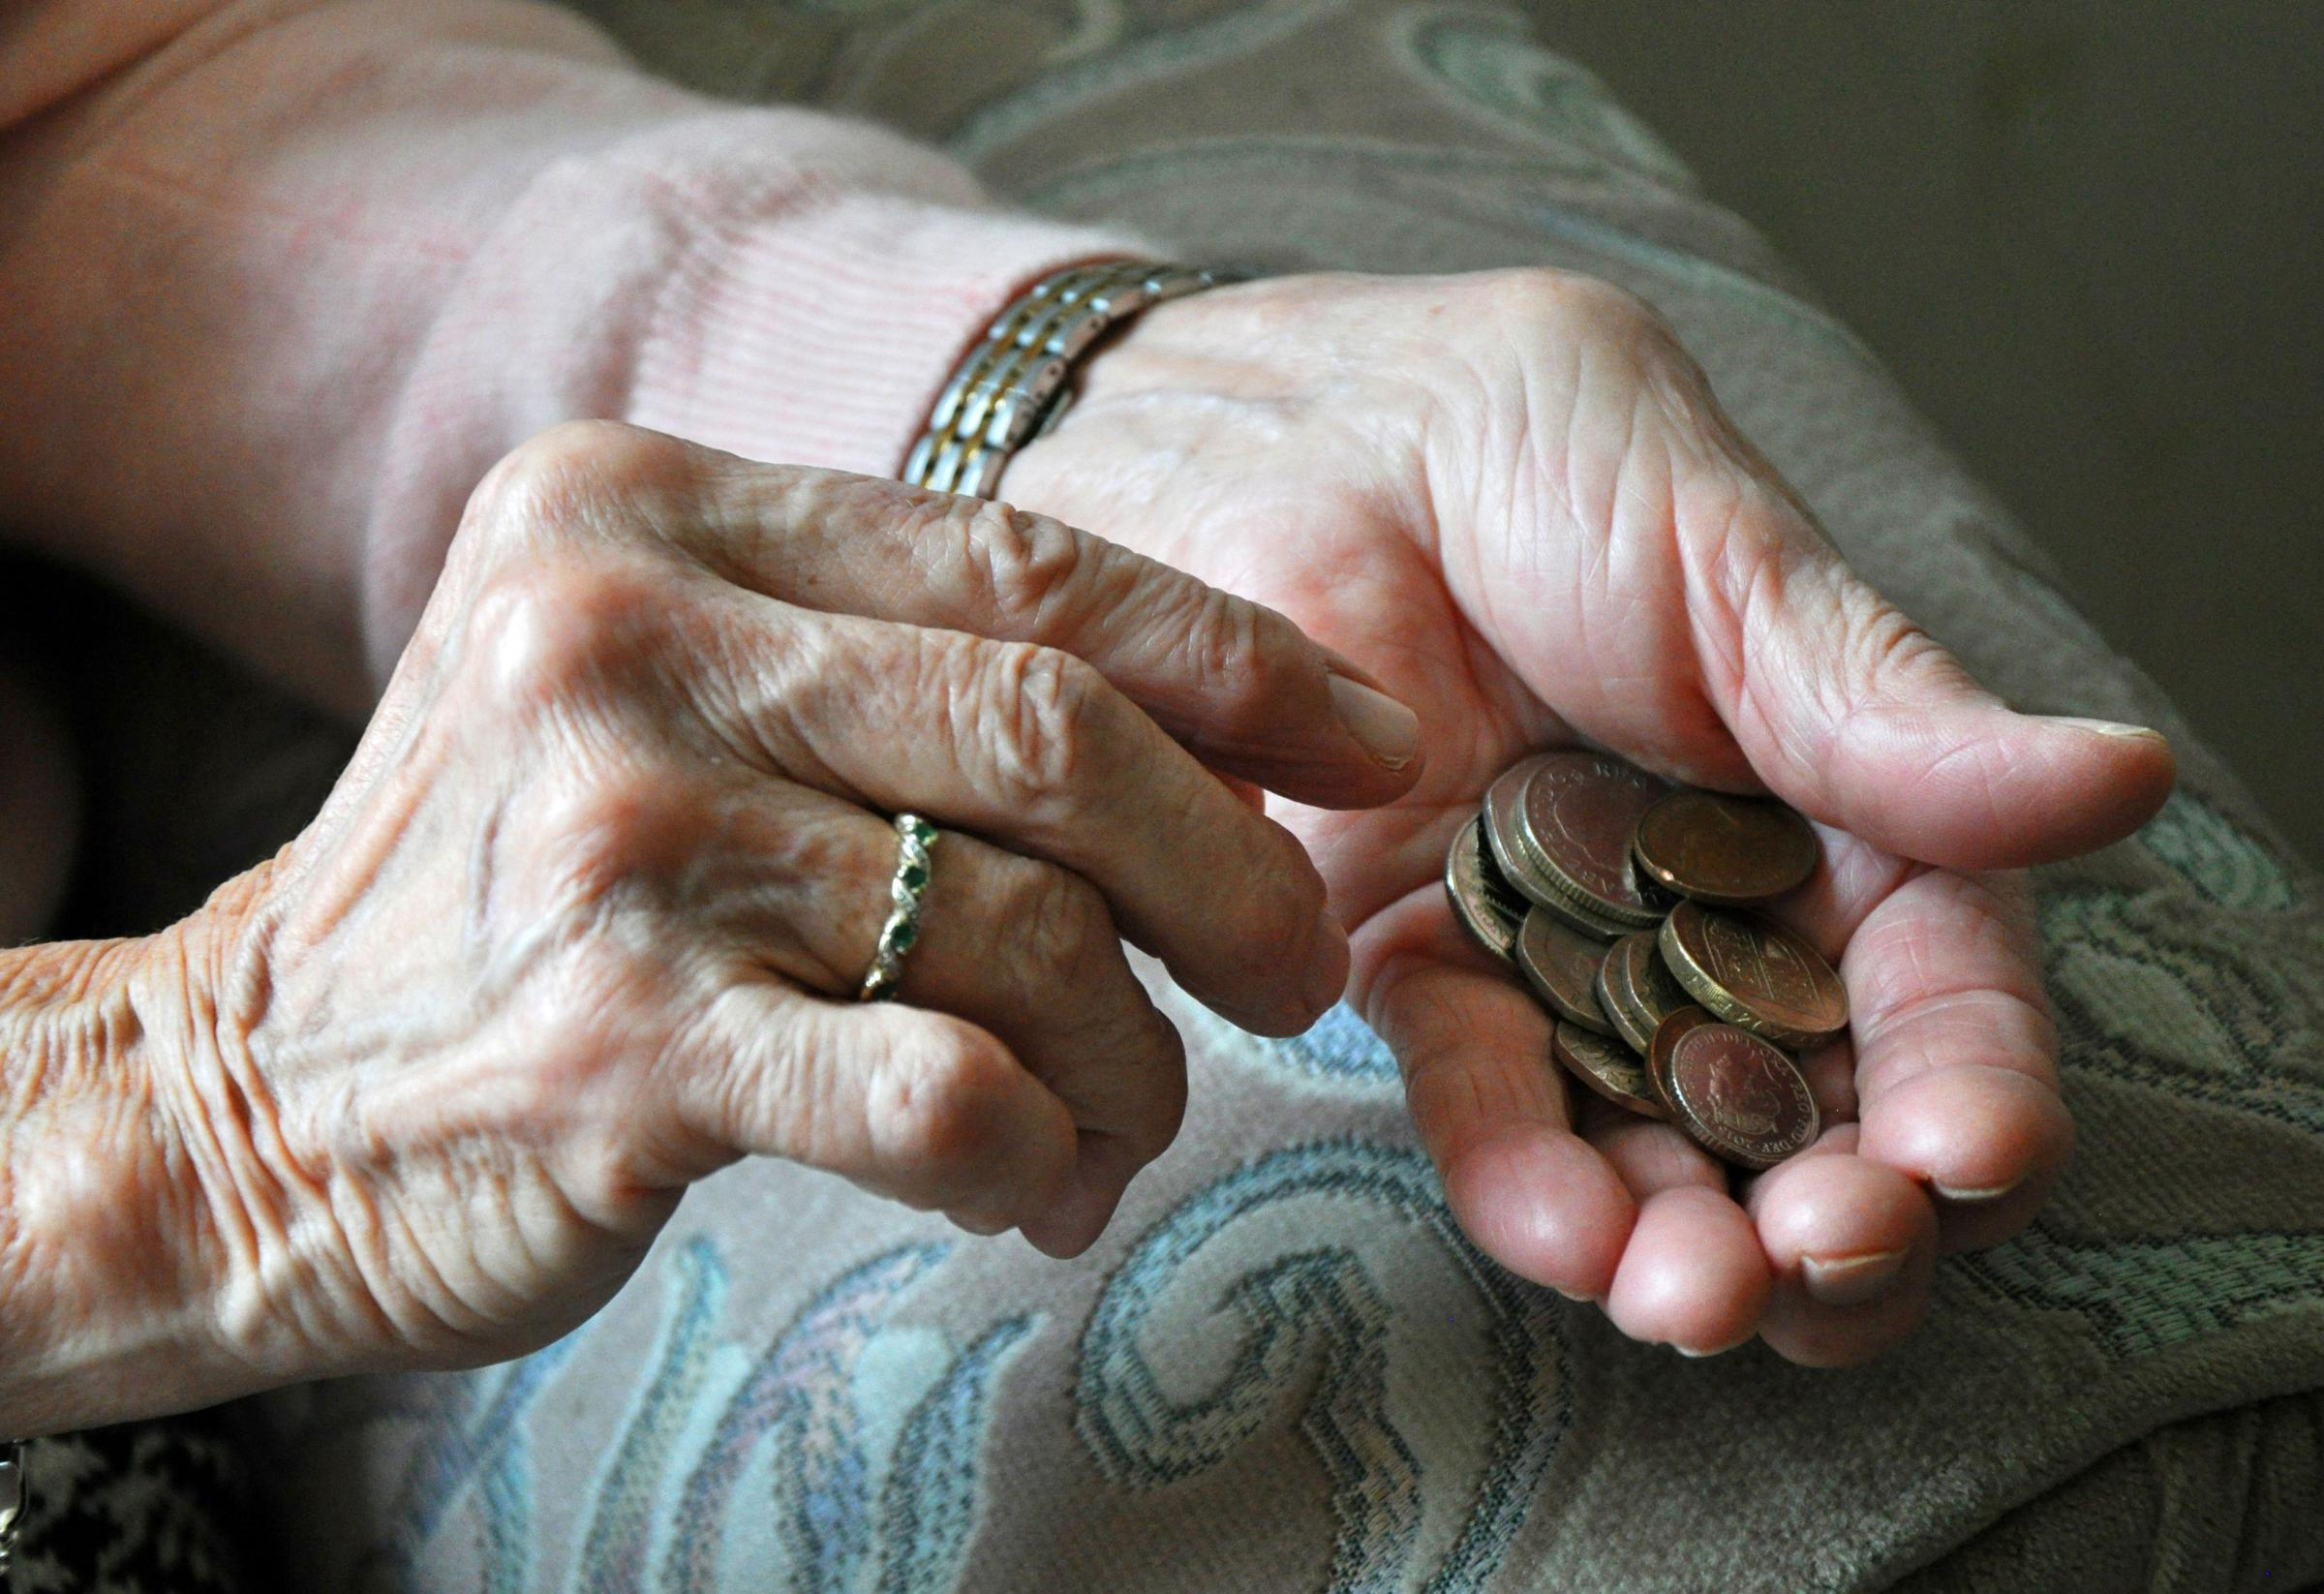 A 90-year-old UK pensioner living overseas could receive £122 per week or just £52 per week, depending on which country they are in